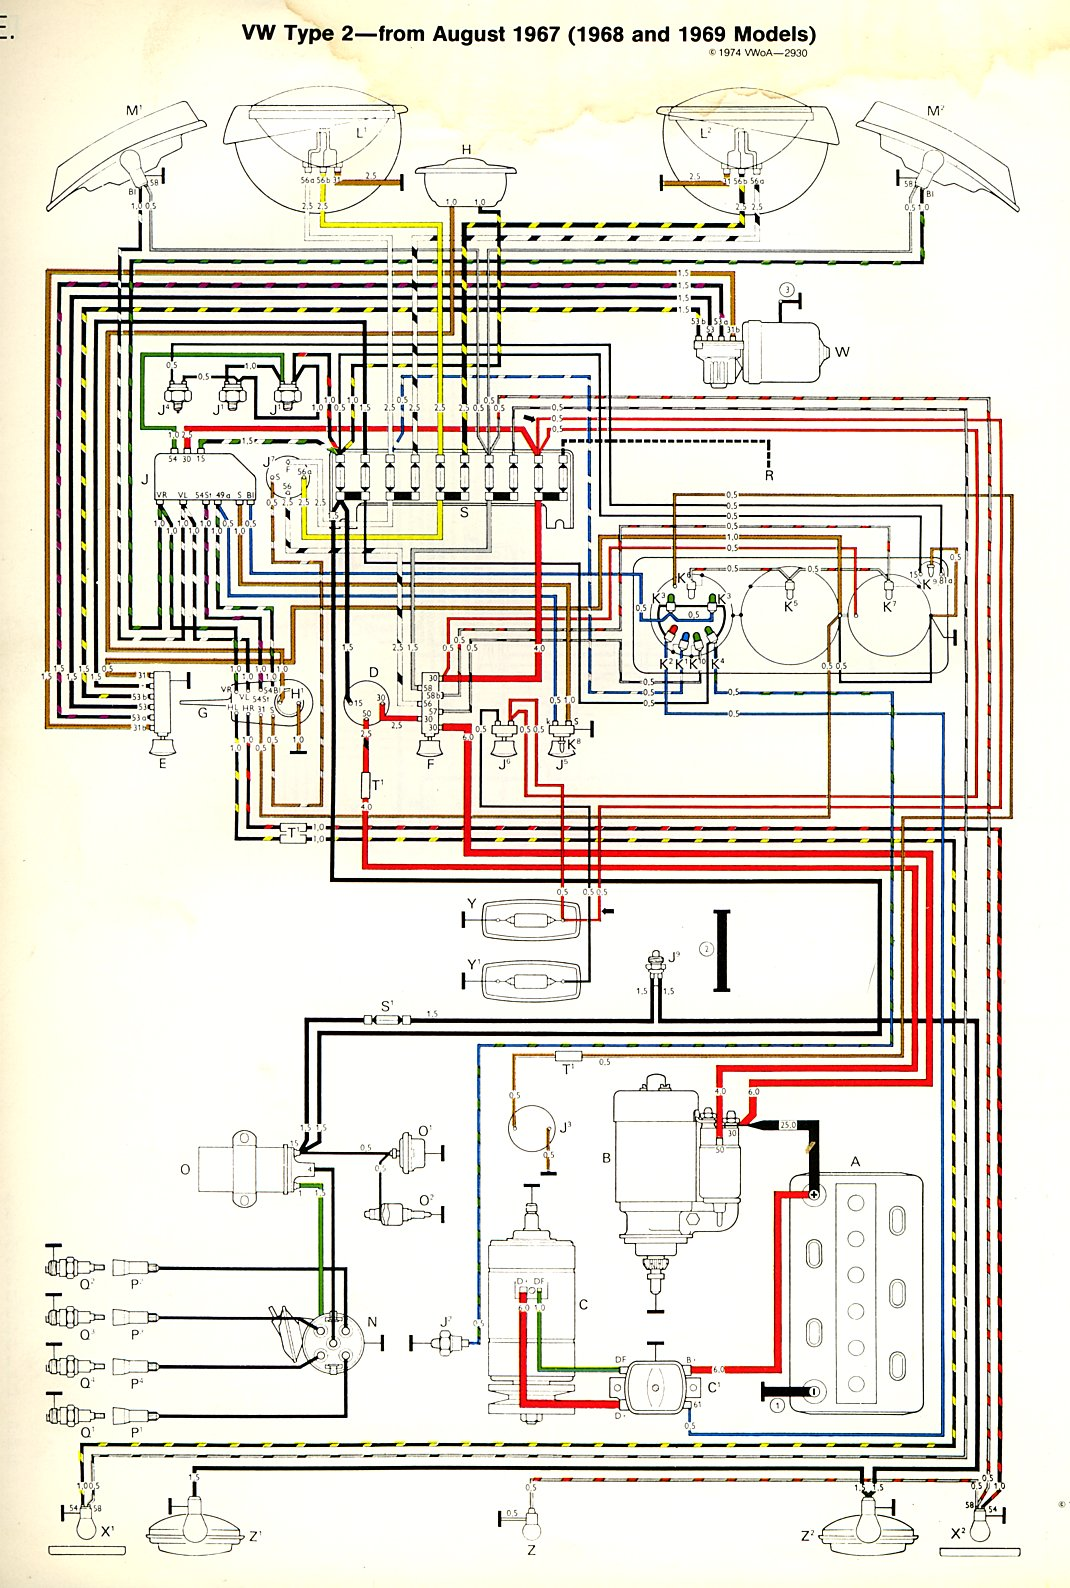 Chevy Silverado Horn Diagram Wiring Schematic Thesamba Com Type 2 Wiring Diagrams